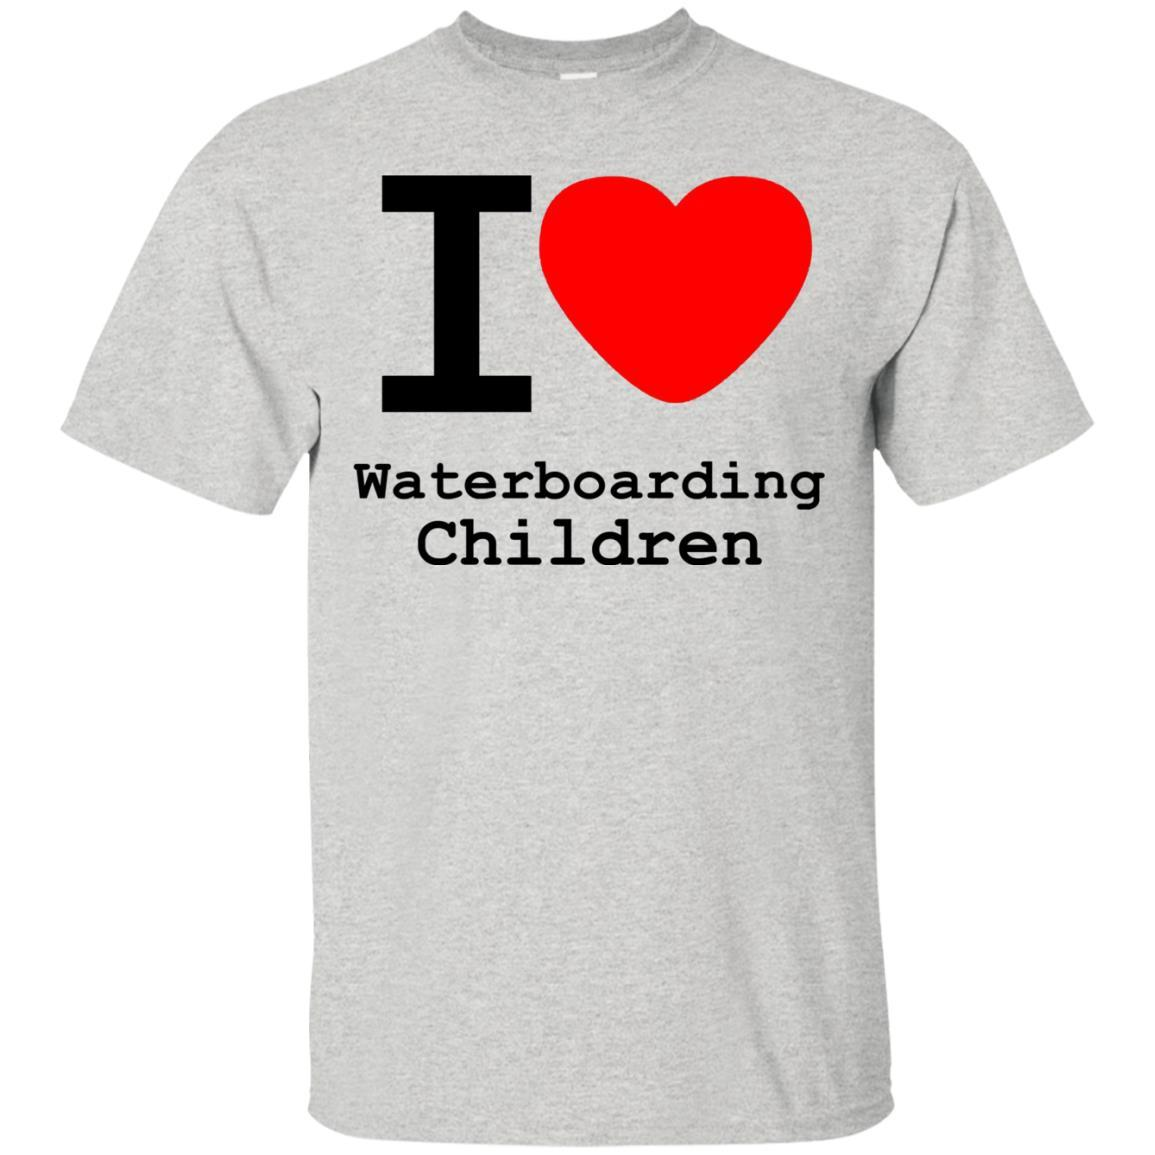 I love Waterboarding Children T-Shirt Ash / 5XL